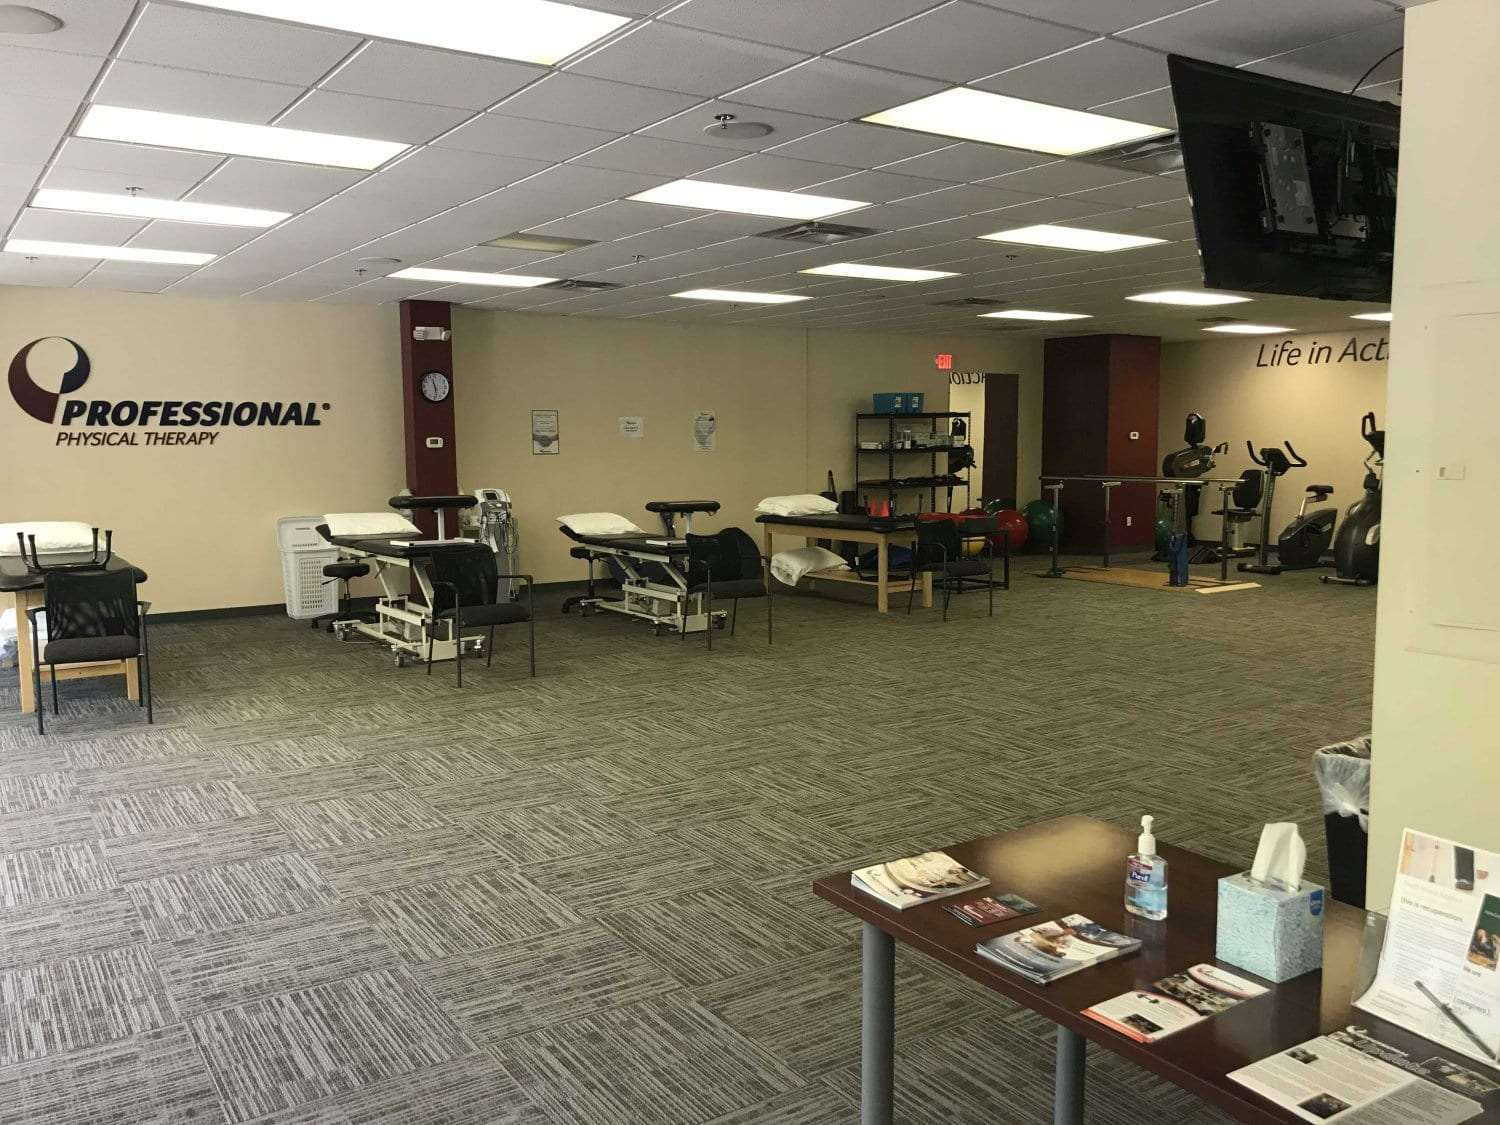 Here is an image of the equipment used at our physical therapy clinic in Ridgefield, Connecticut.